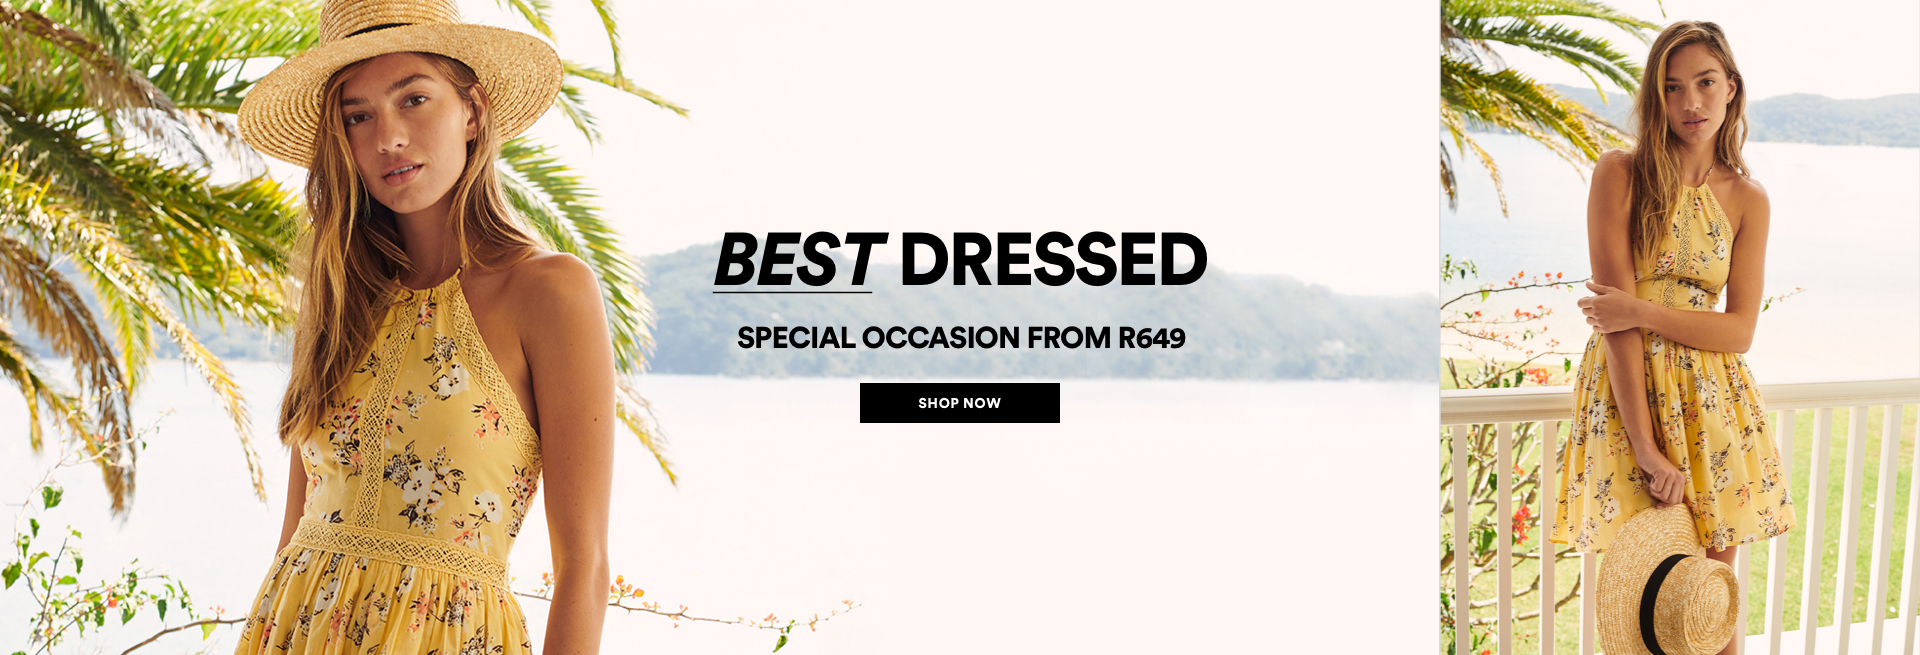 Best Dressed. New and Exclusive from R649. Click to Shop.